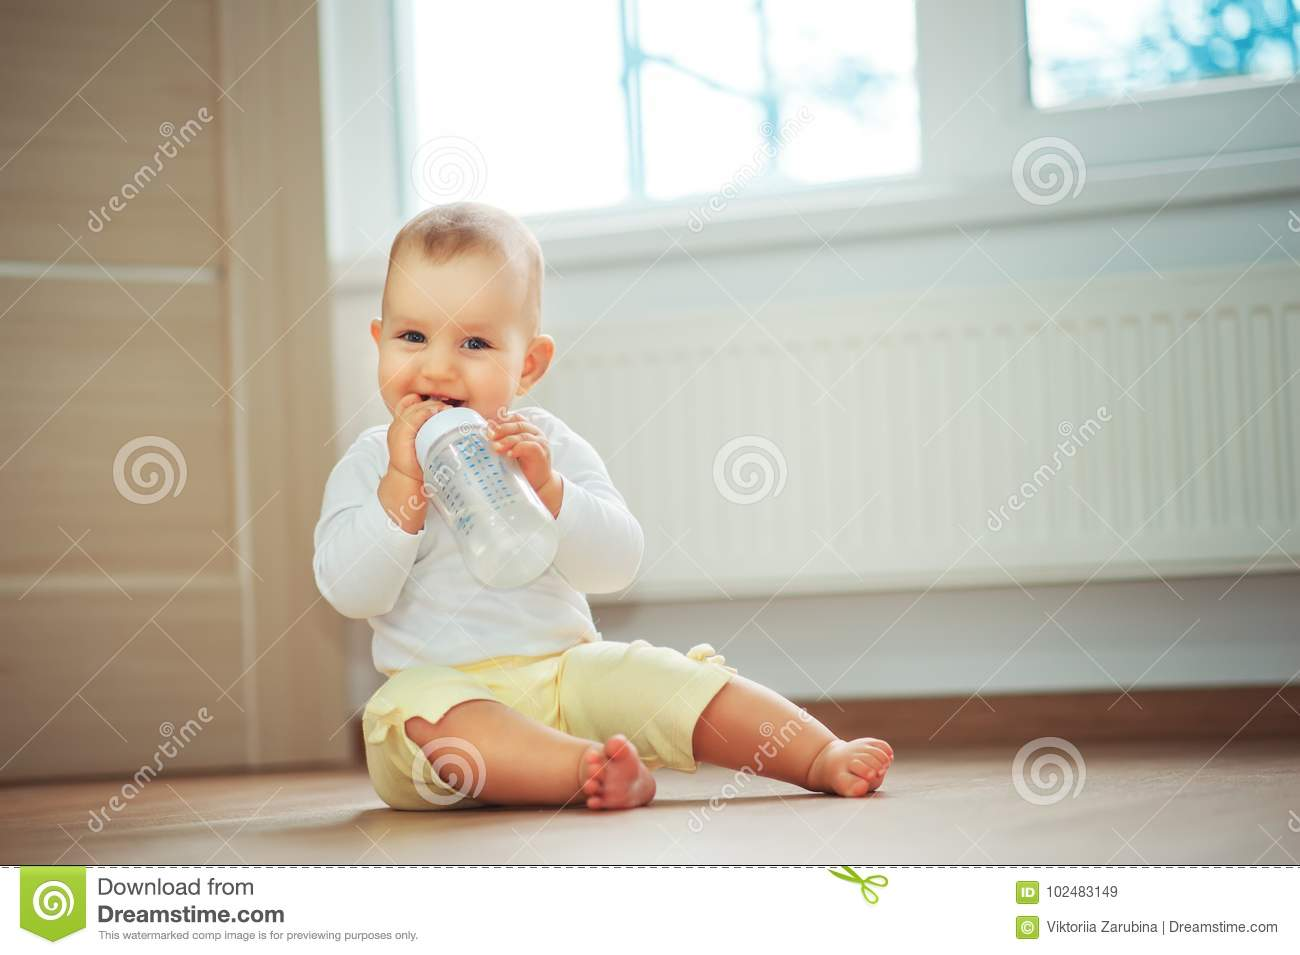 Little cute baby girl sitting in room on floor drinking water from bottle and smiling. Happy infant. Family people indoor Interior